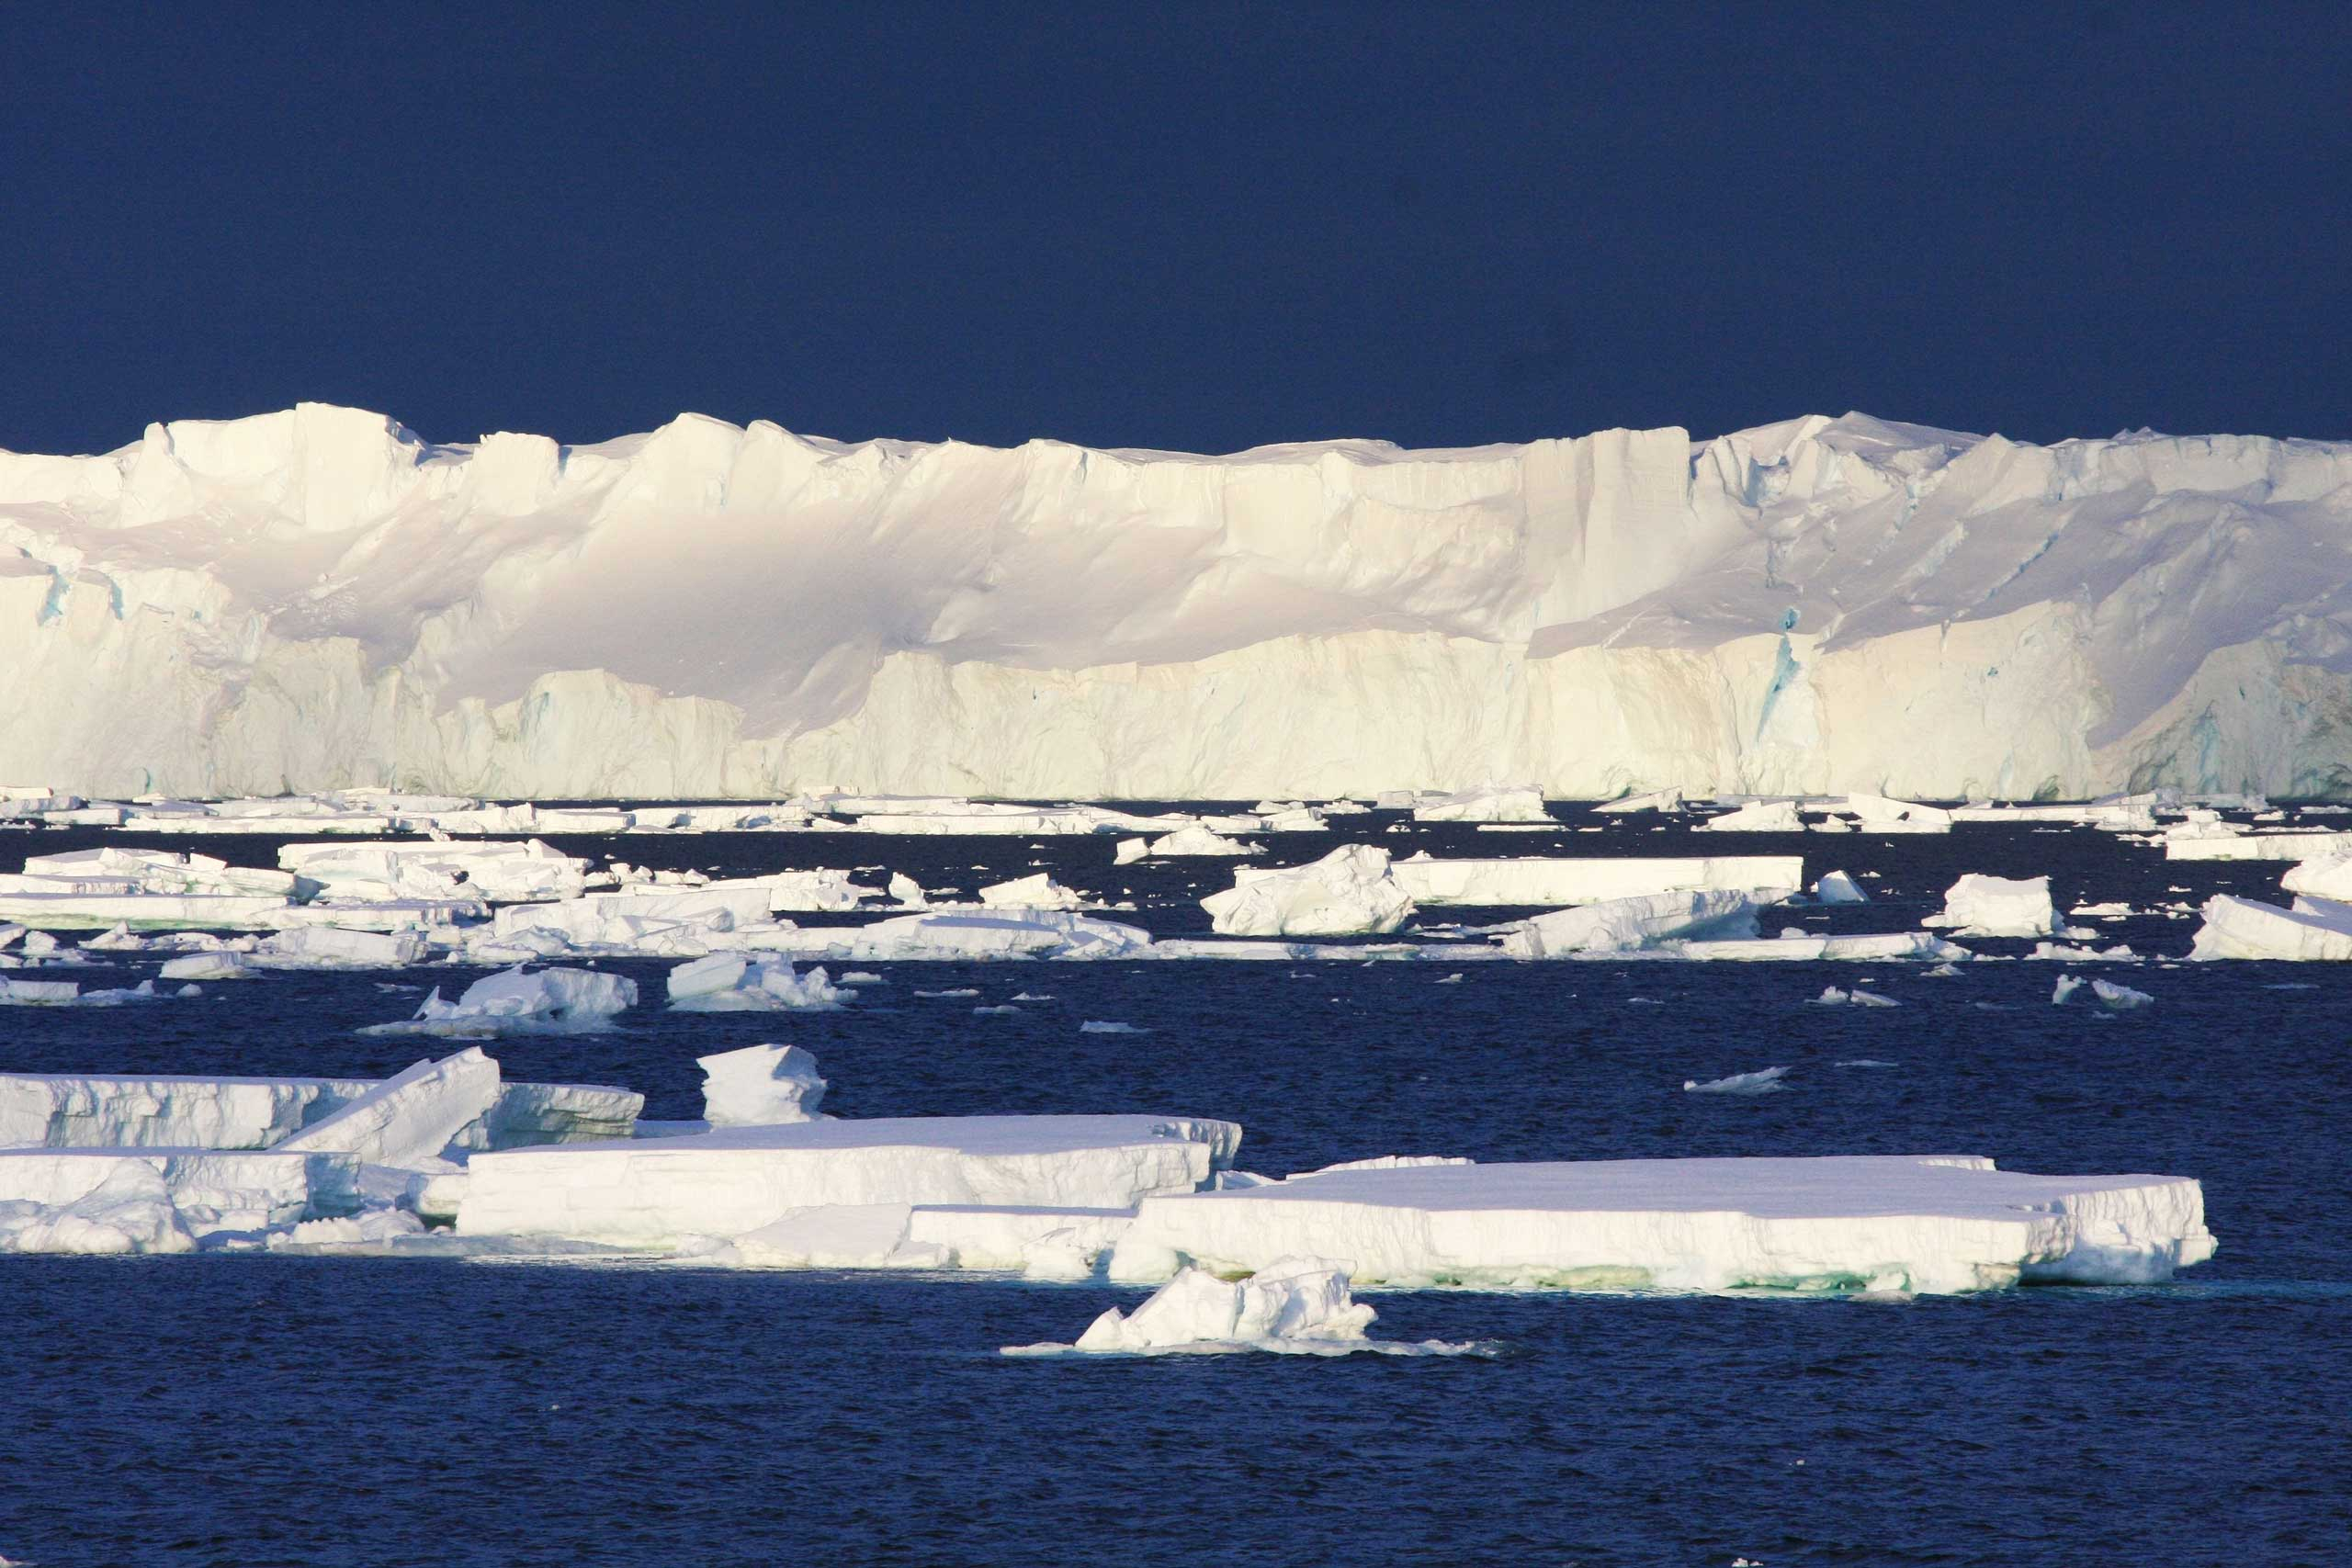 The Totten Glacier, pictured here, is the most rapidly thinning glacier in East Antarctica.